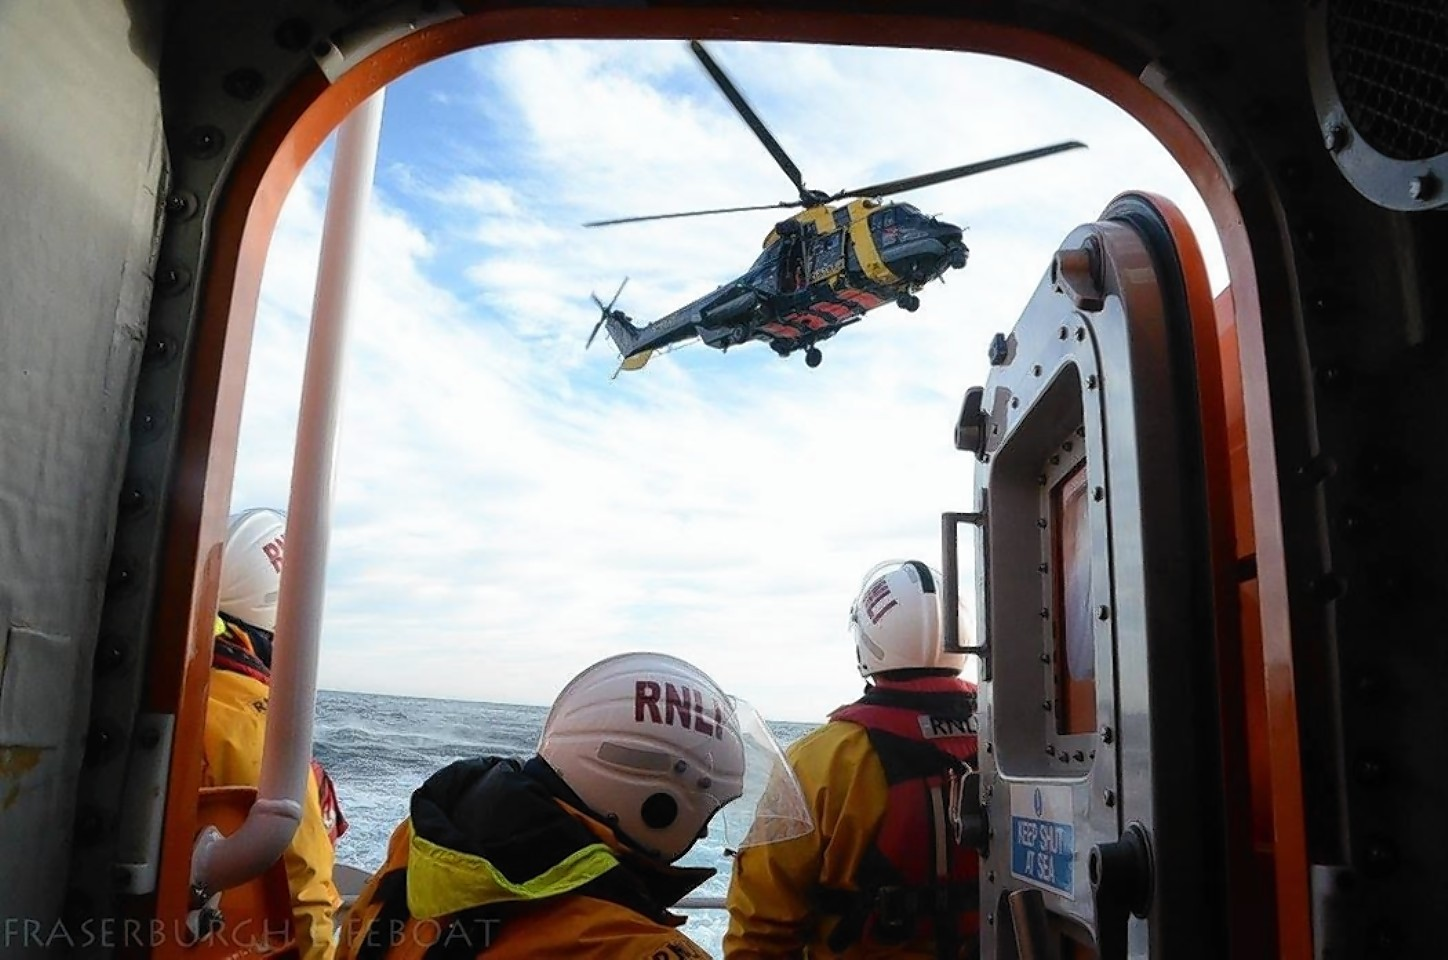 Picture courtesy of Fraserburgh Lifeboat facebook page